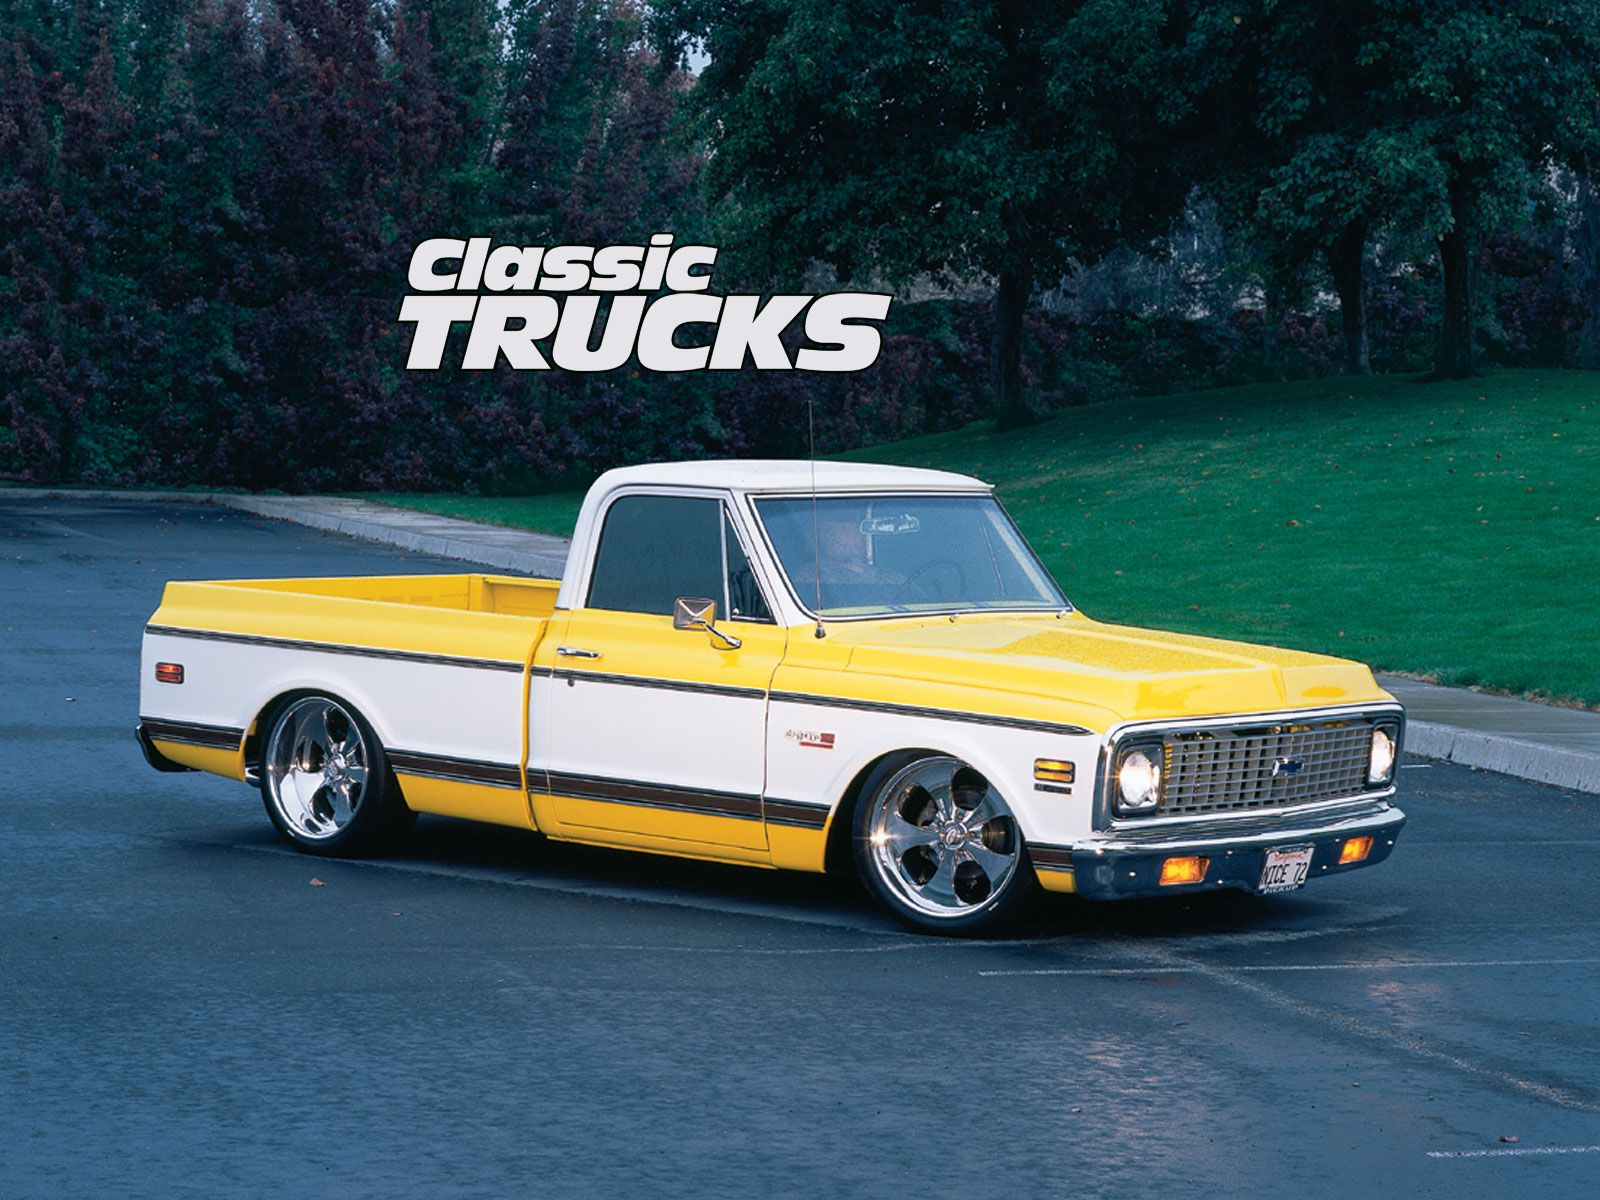 free desktop wallpapers 017 z2Bclassic truck desktop wallpapers 1600x1200